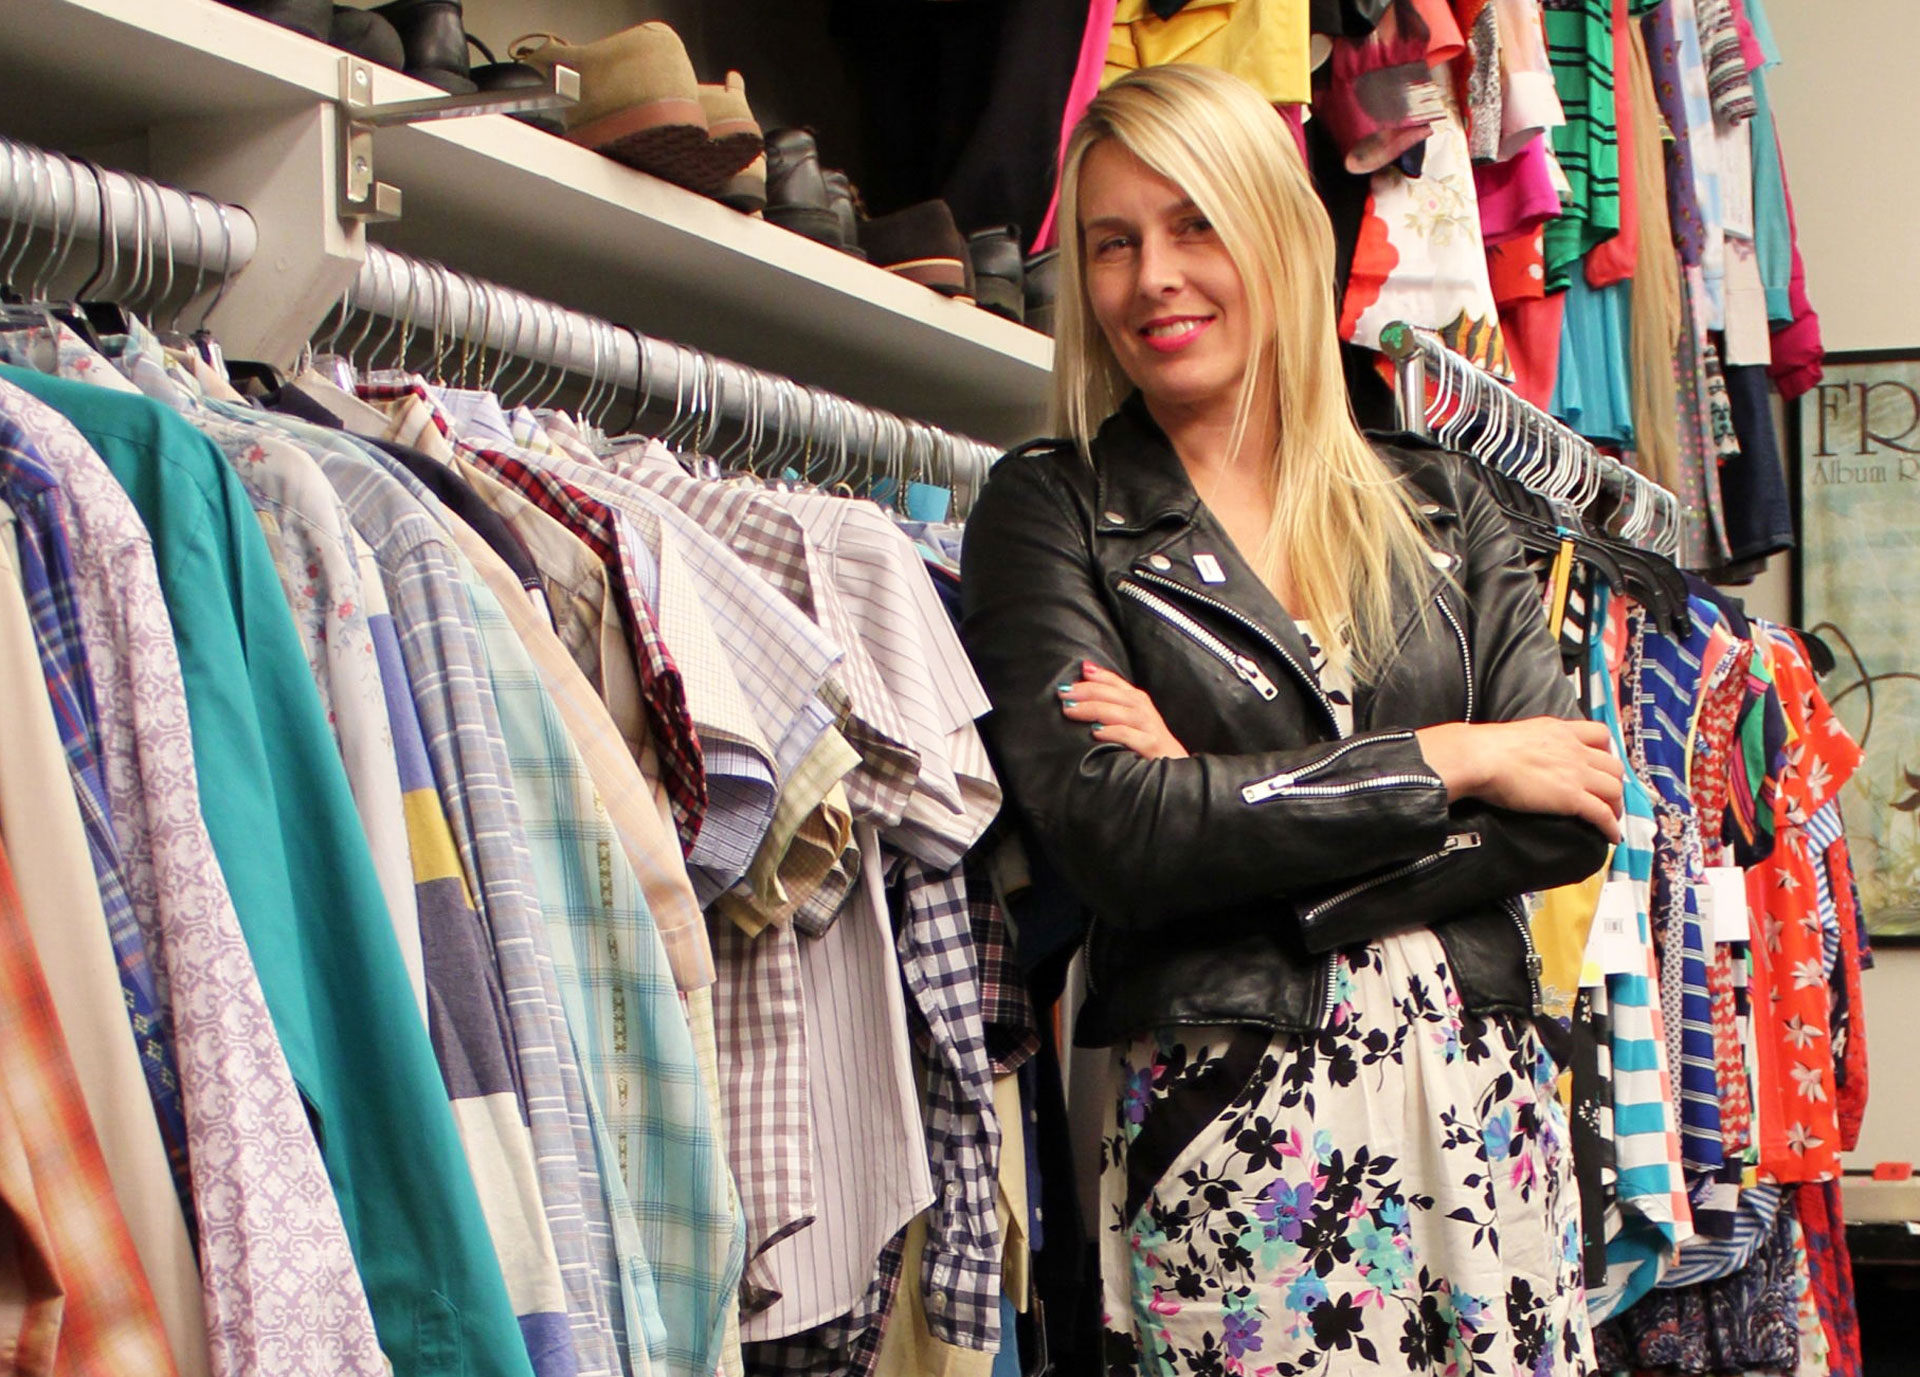 Costume designer Alison Freer in her closet.